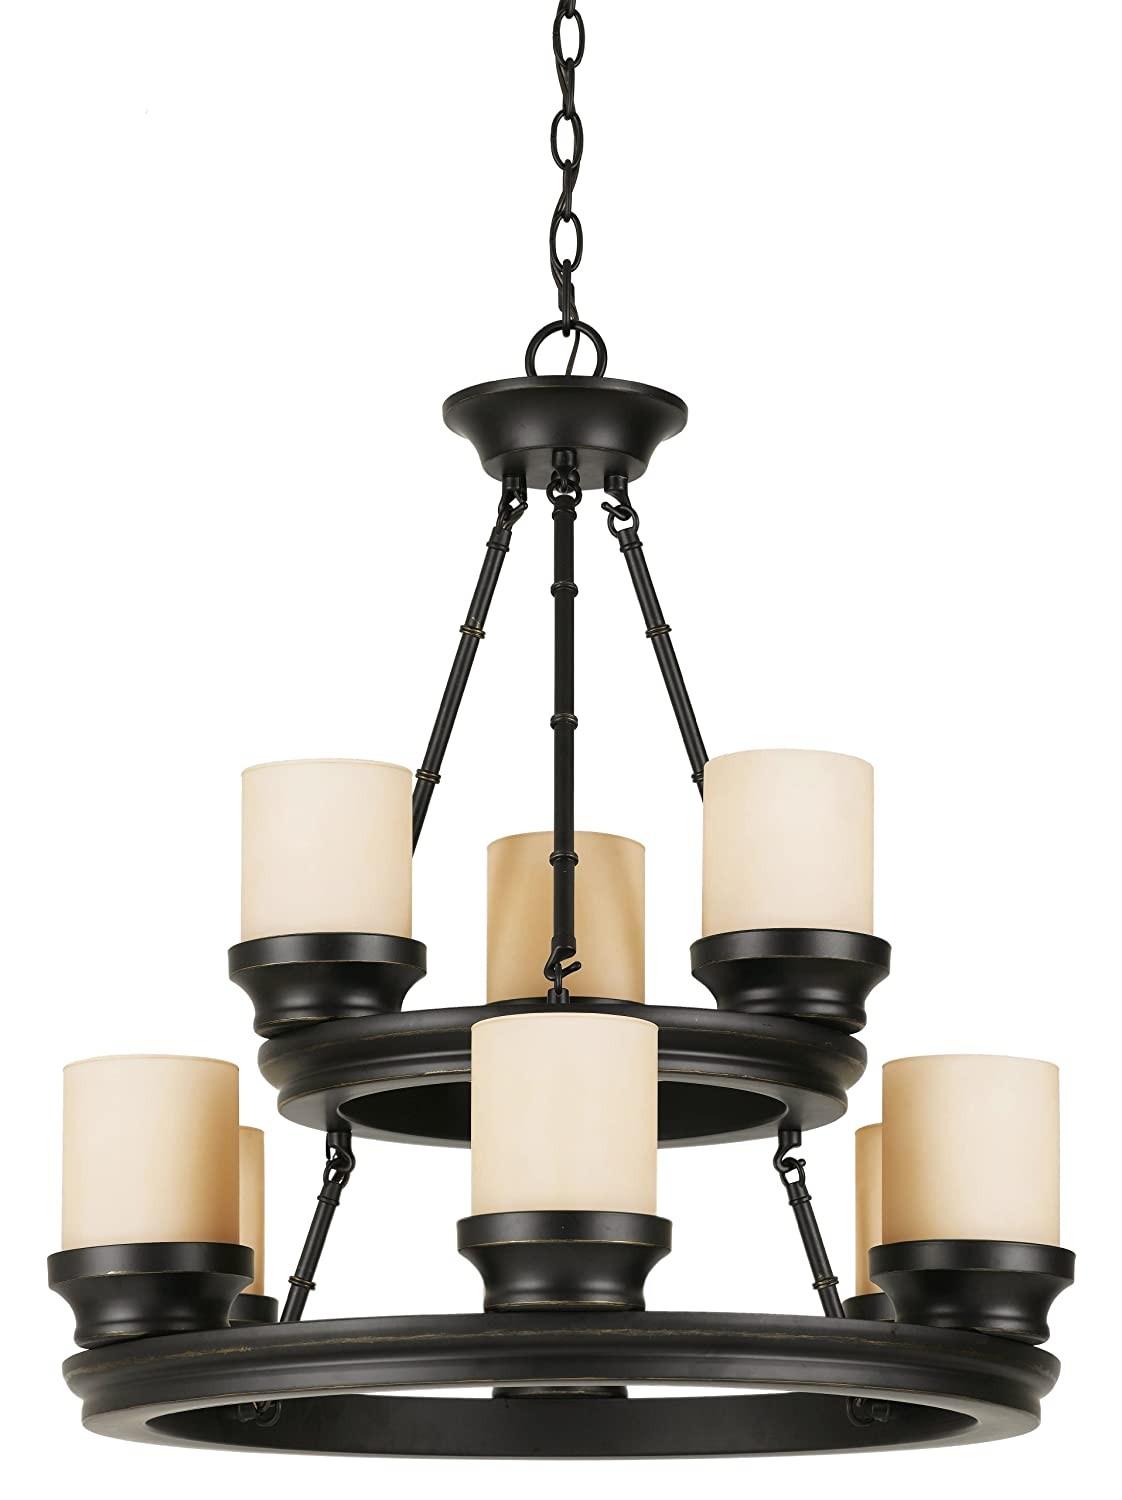 Amazon trans globe lighting 3369 rob chandelier with frosted amazon trans globe lighting 3369 rob chandelier with frosted glass shades rubbed oil bronze finished home kitchen arubaitofo Image collections